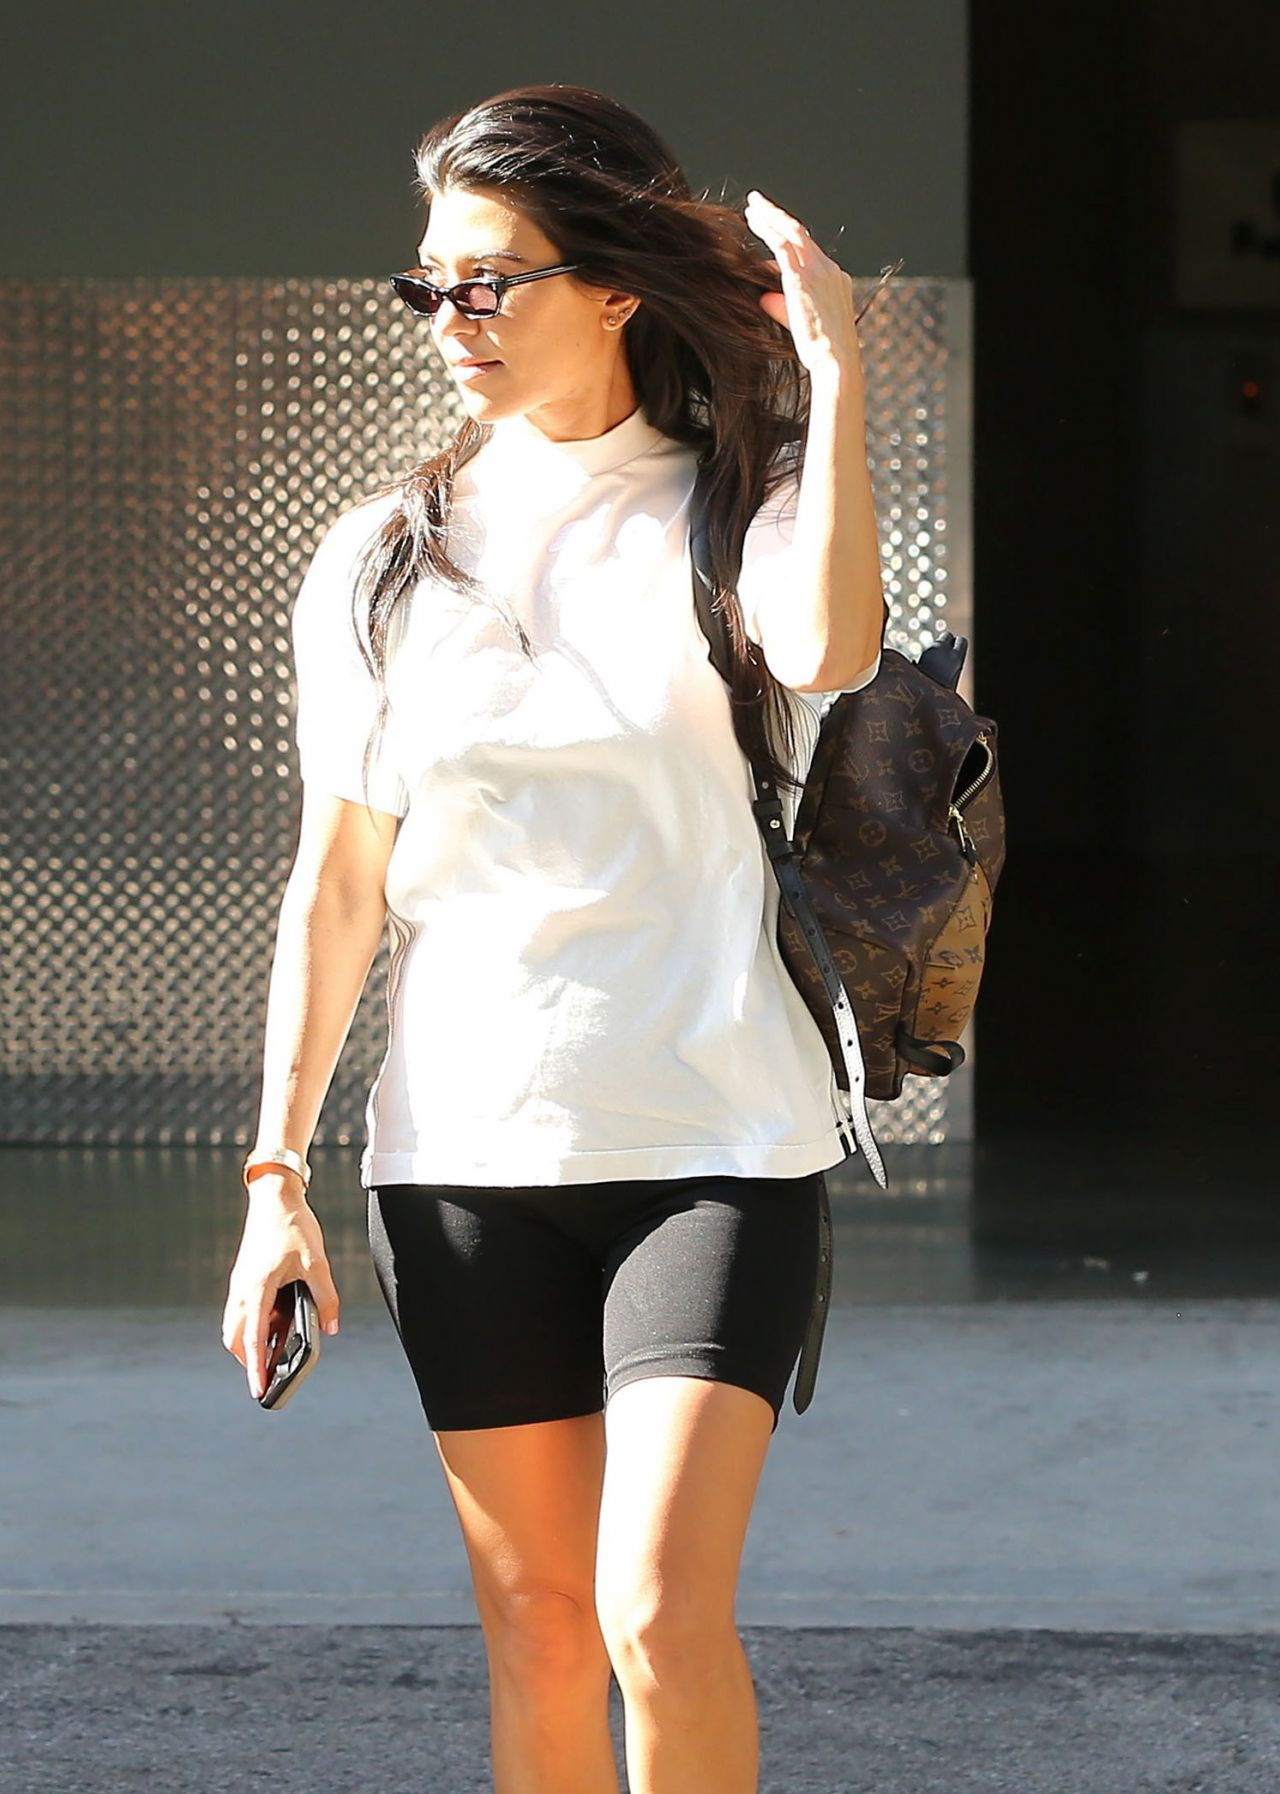 Kourtney kardashian running errands in calabasas ca naked (43 pics)